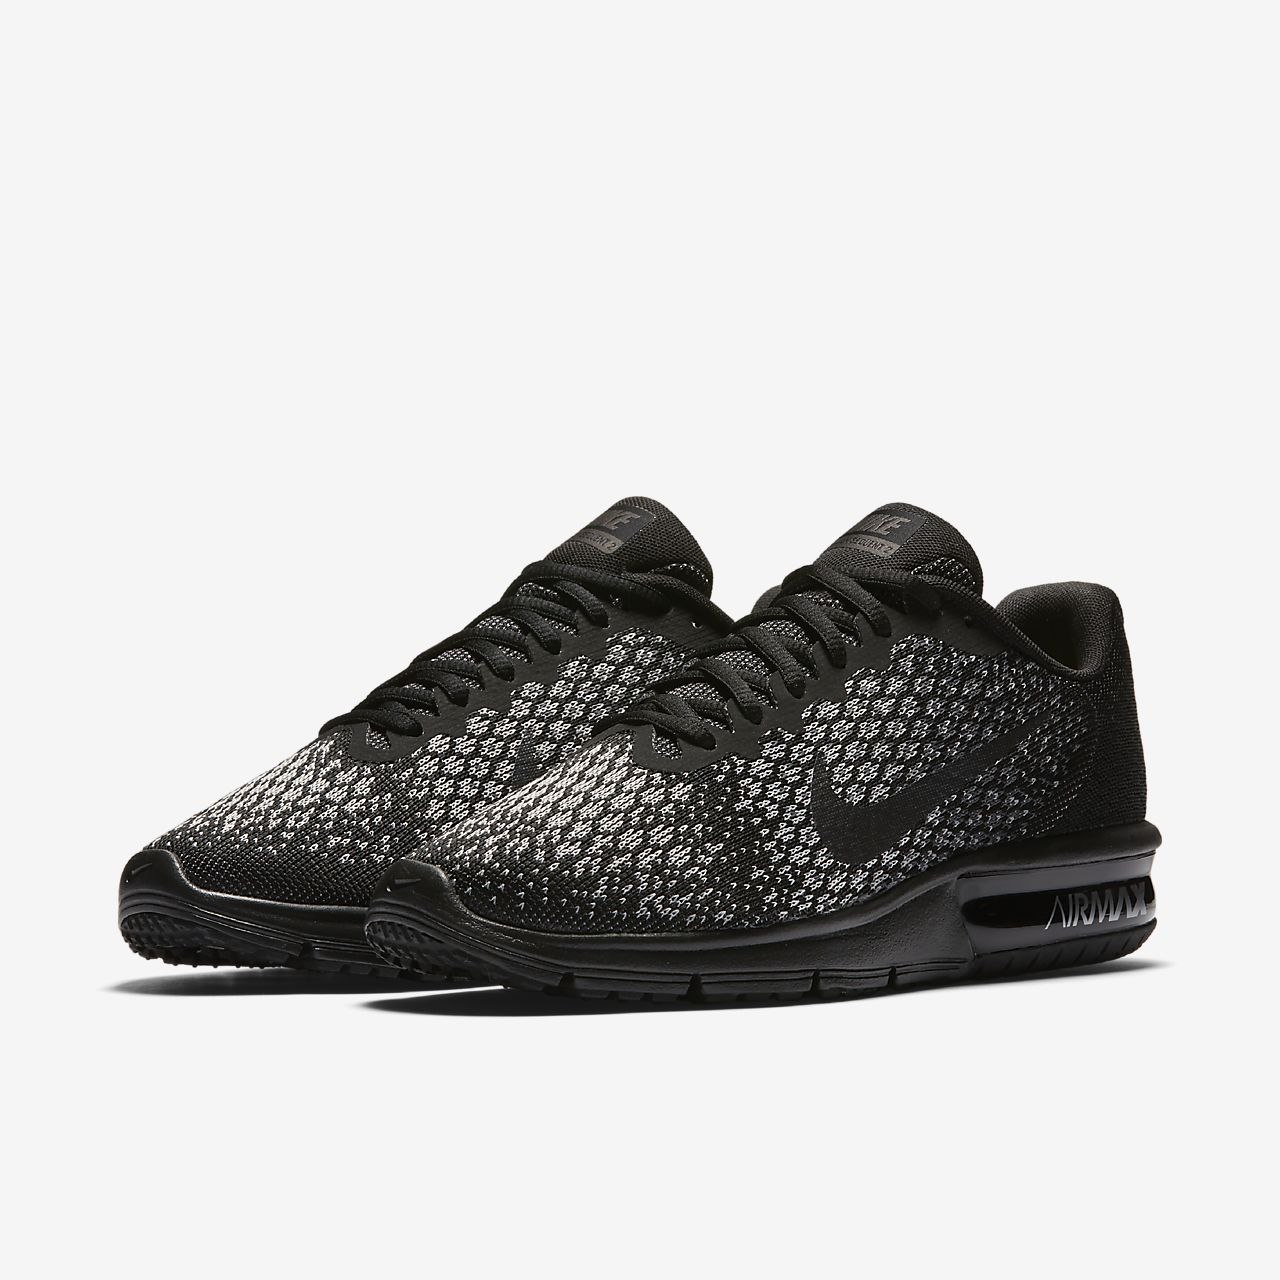 2nike air max sequent 2